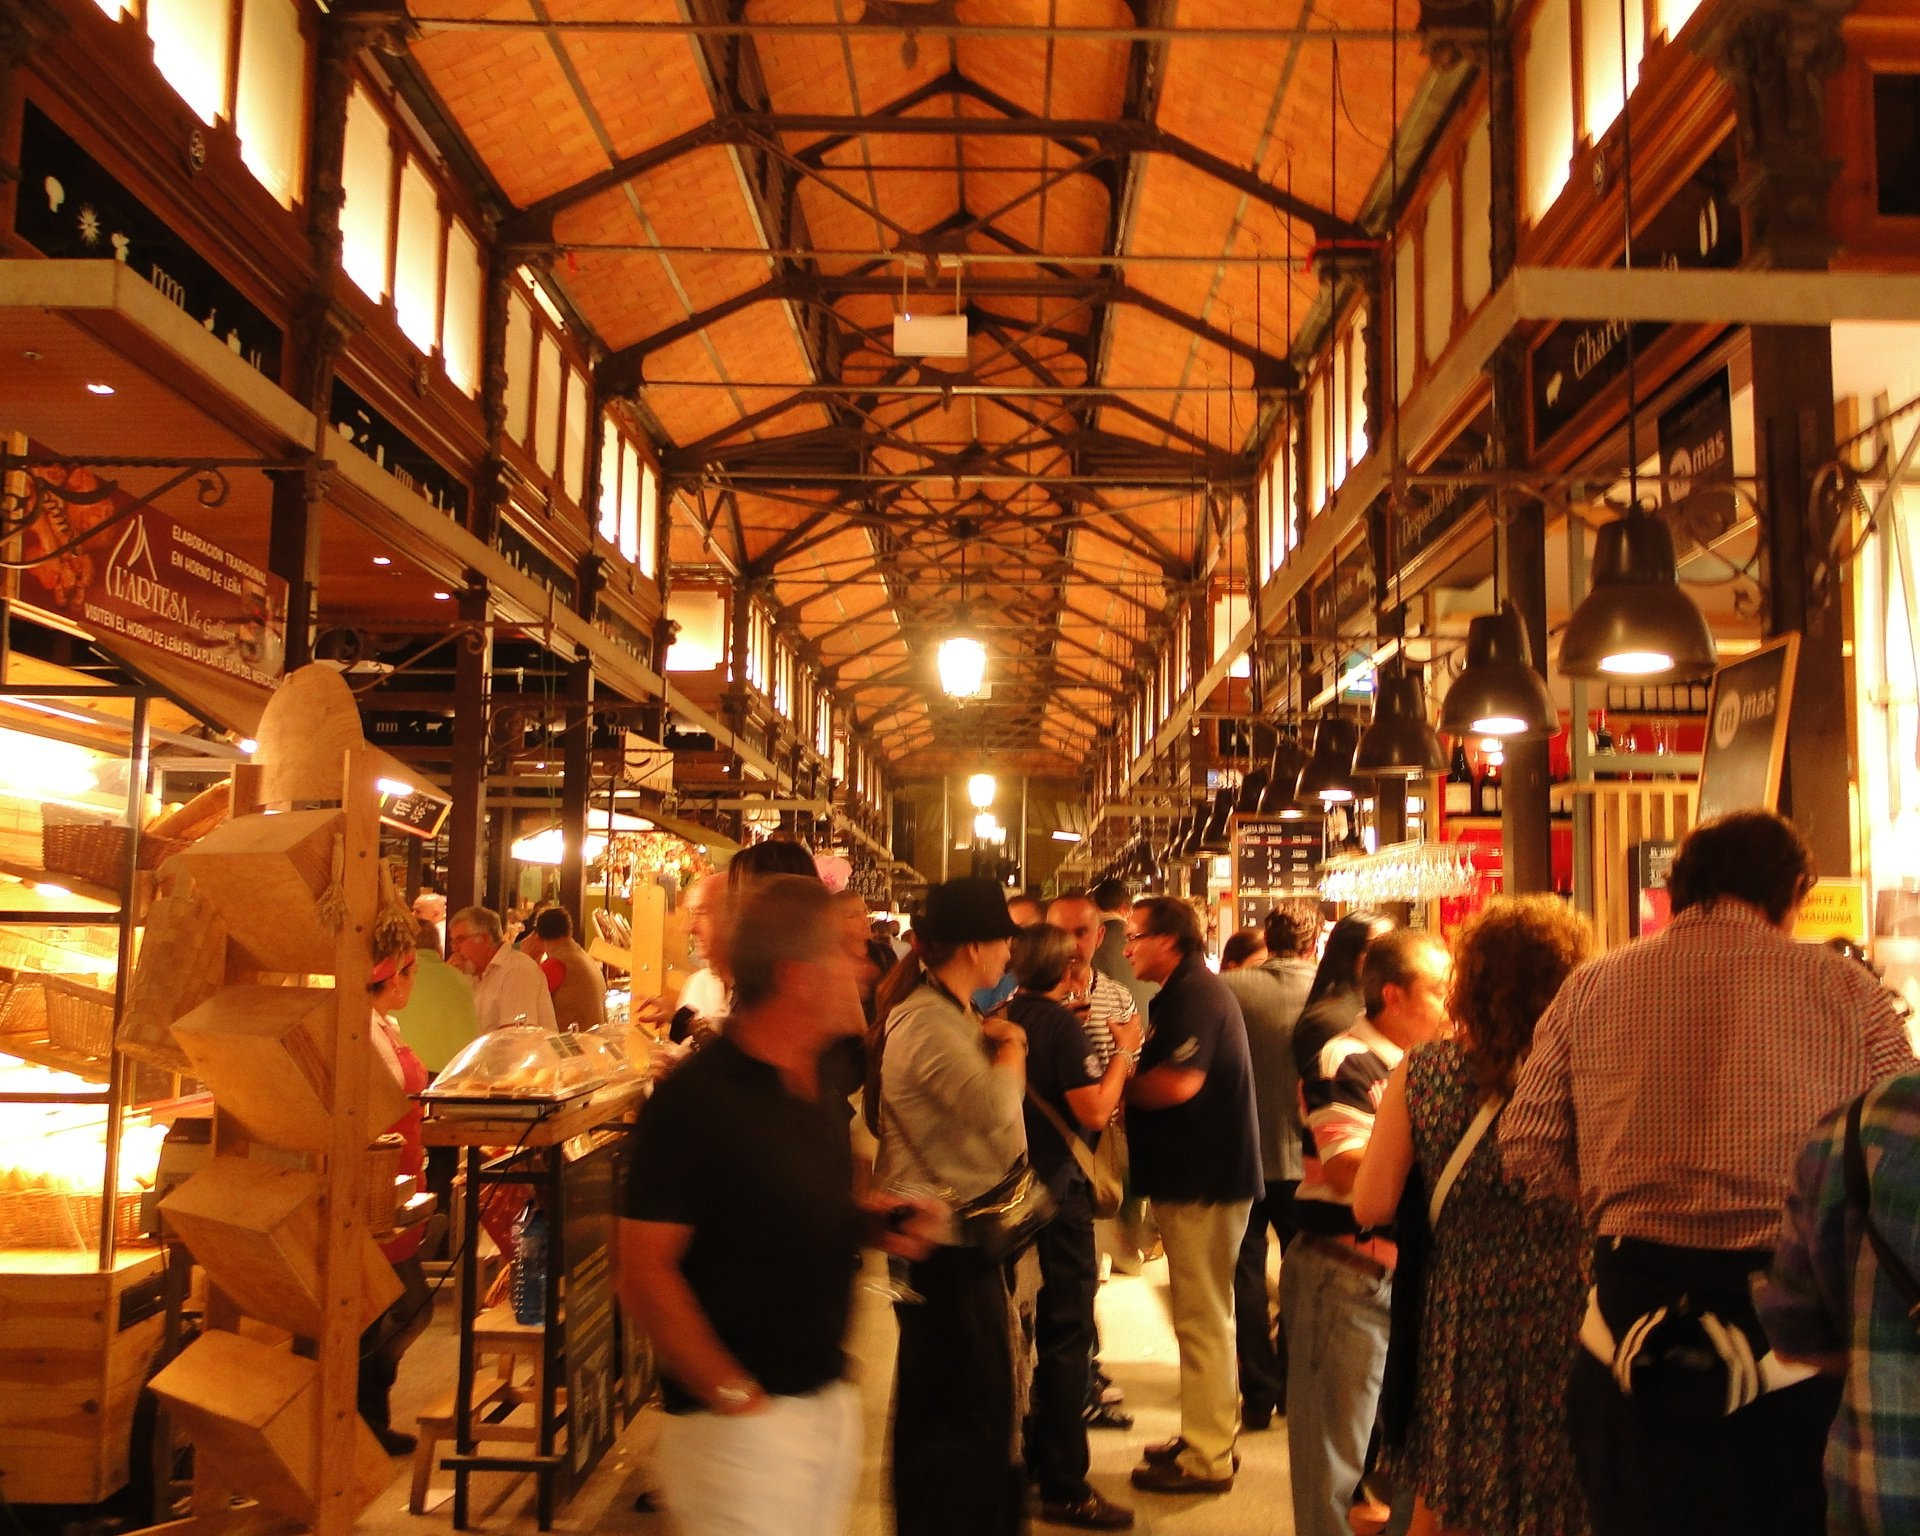 1). Mercado San Miguel - One of Europe's largest market, with around 200 stalls, this lovely art nouveau marketplace has its roots dating back to 1916.